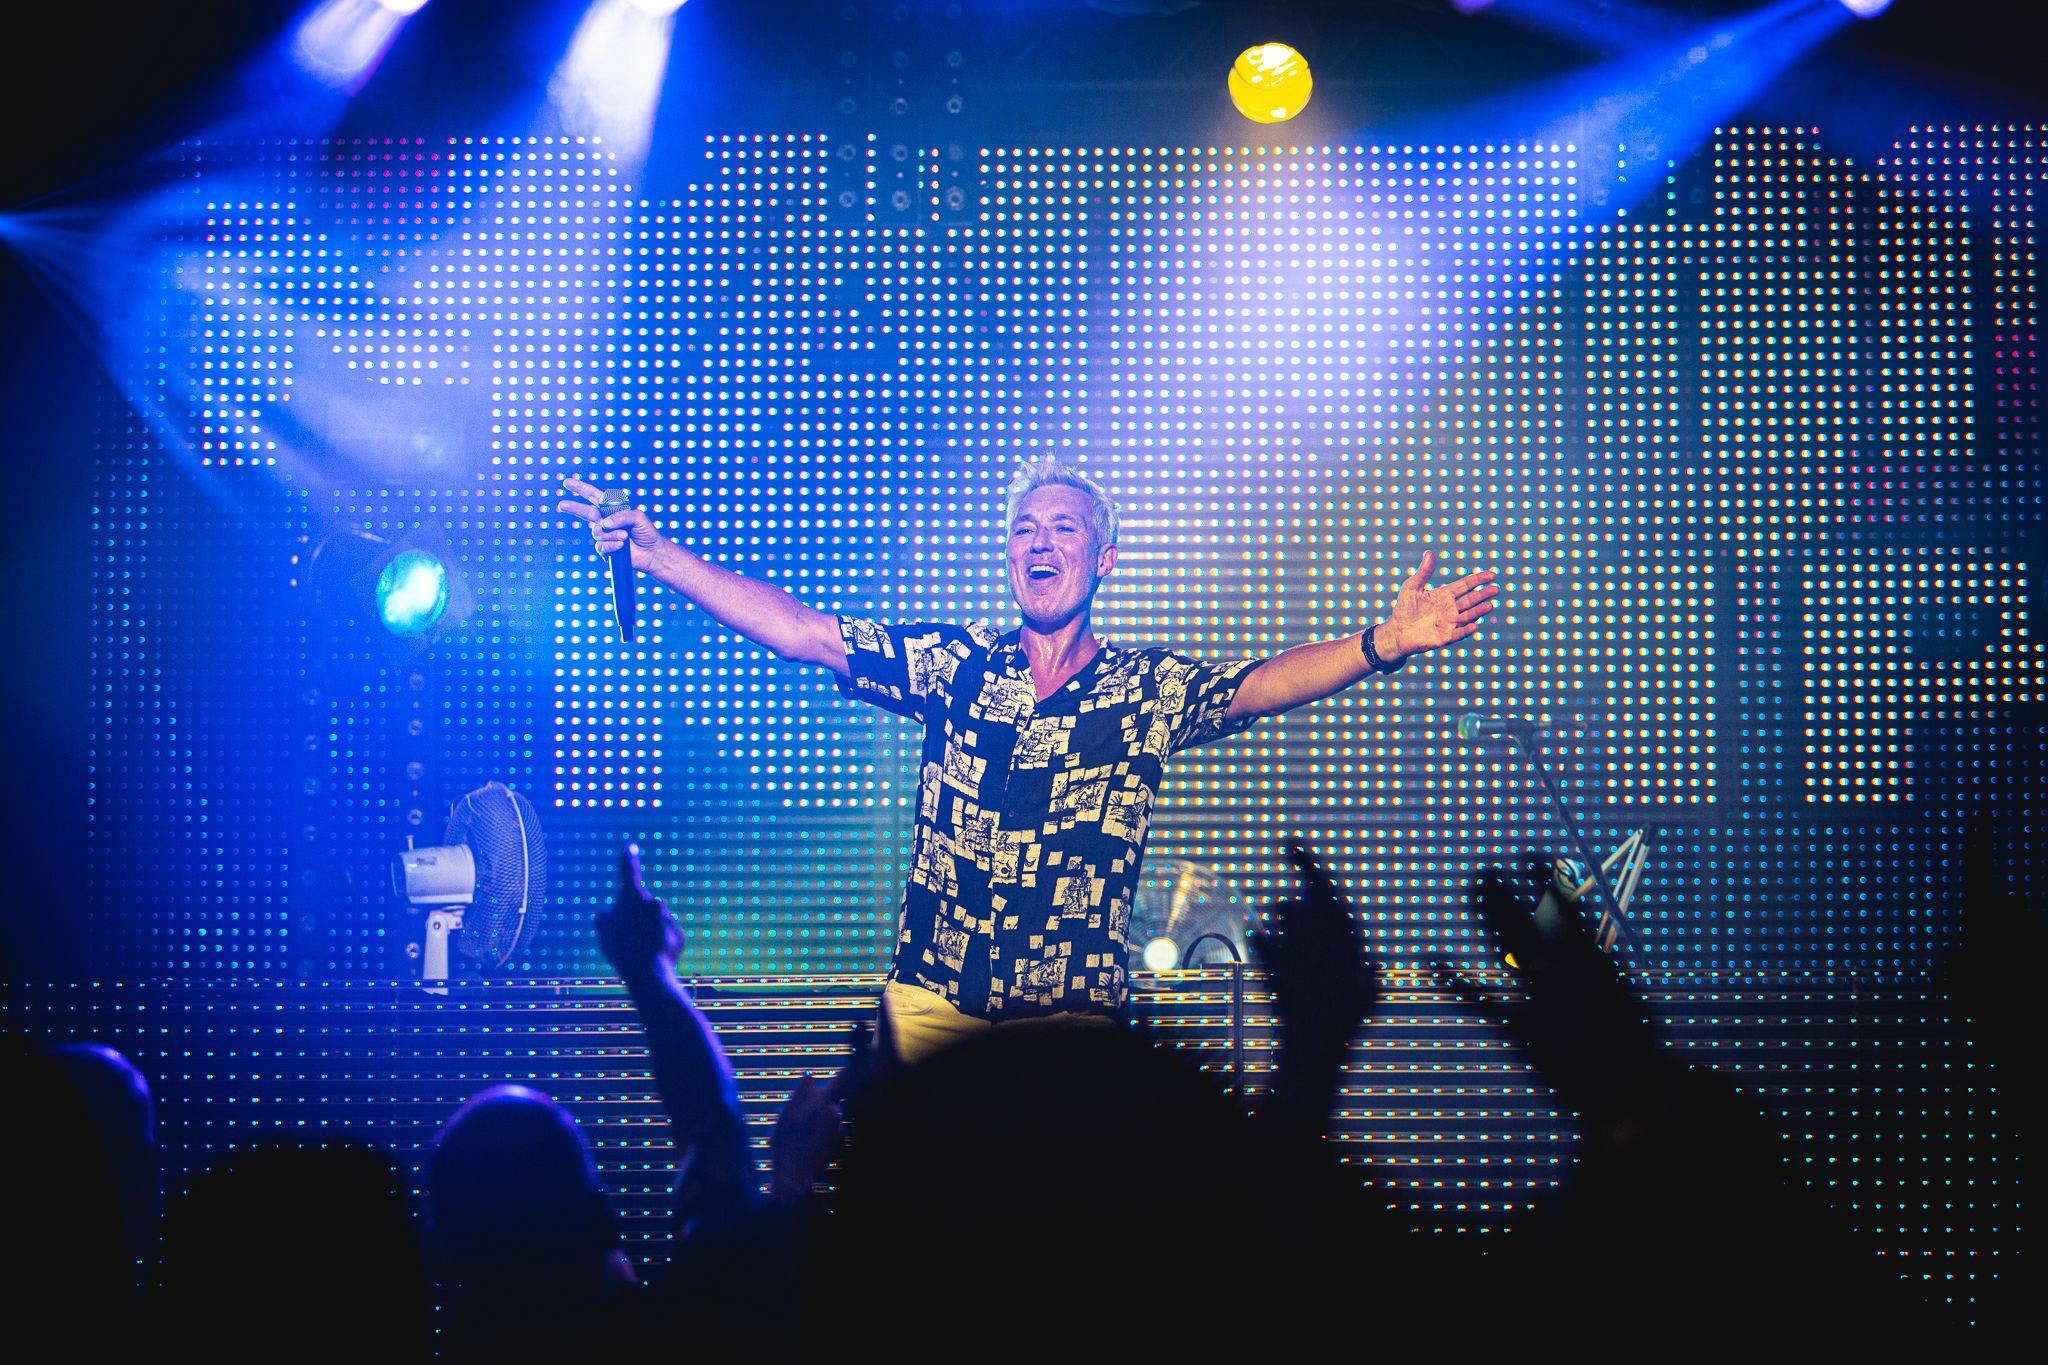 Martin Kemp: The Ultimate Back to the 80's Dj Set